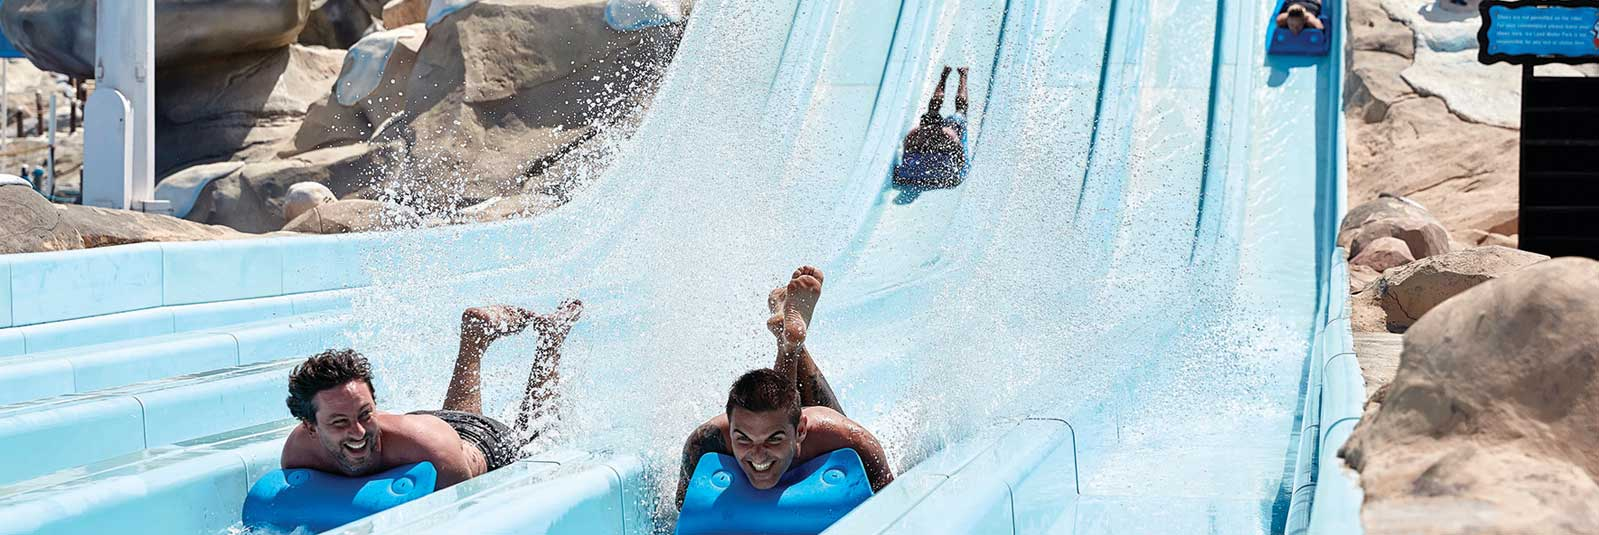 iceland-waterpark-entry-ticket